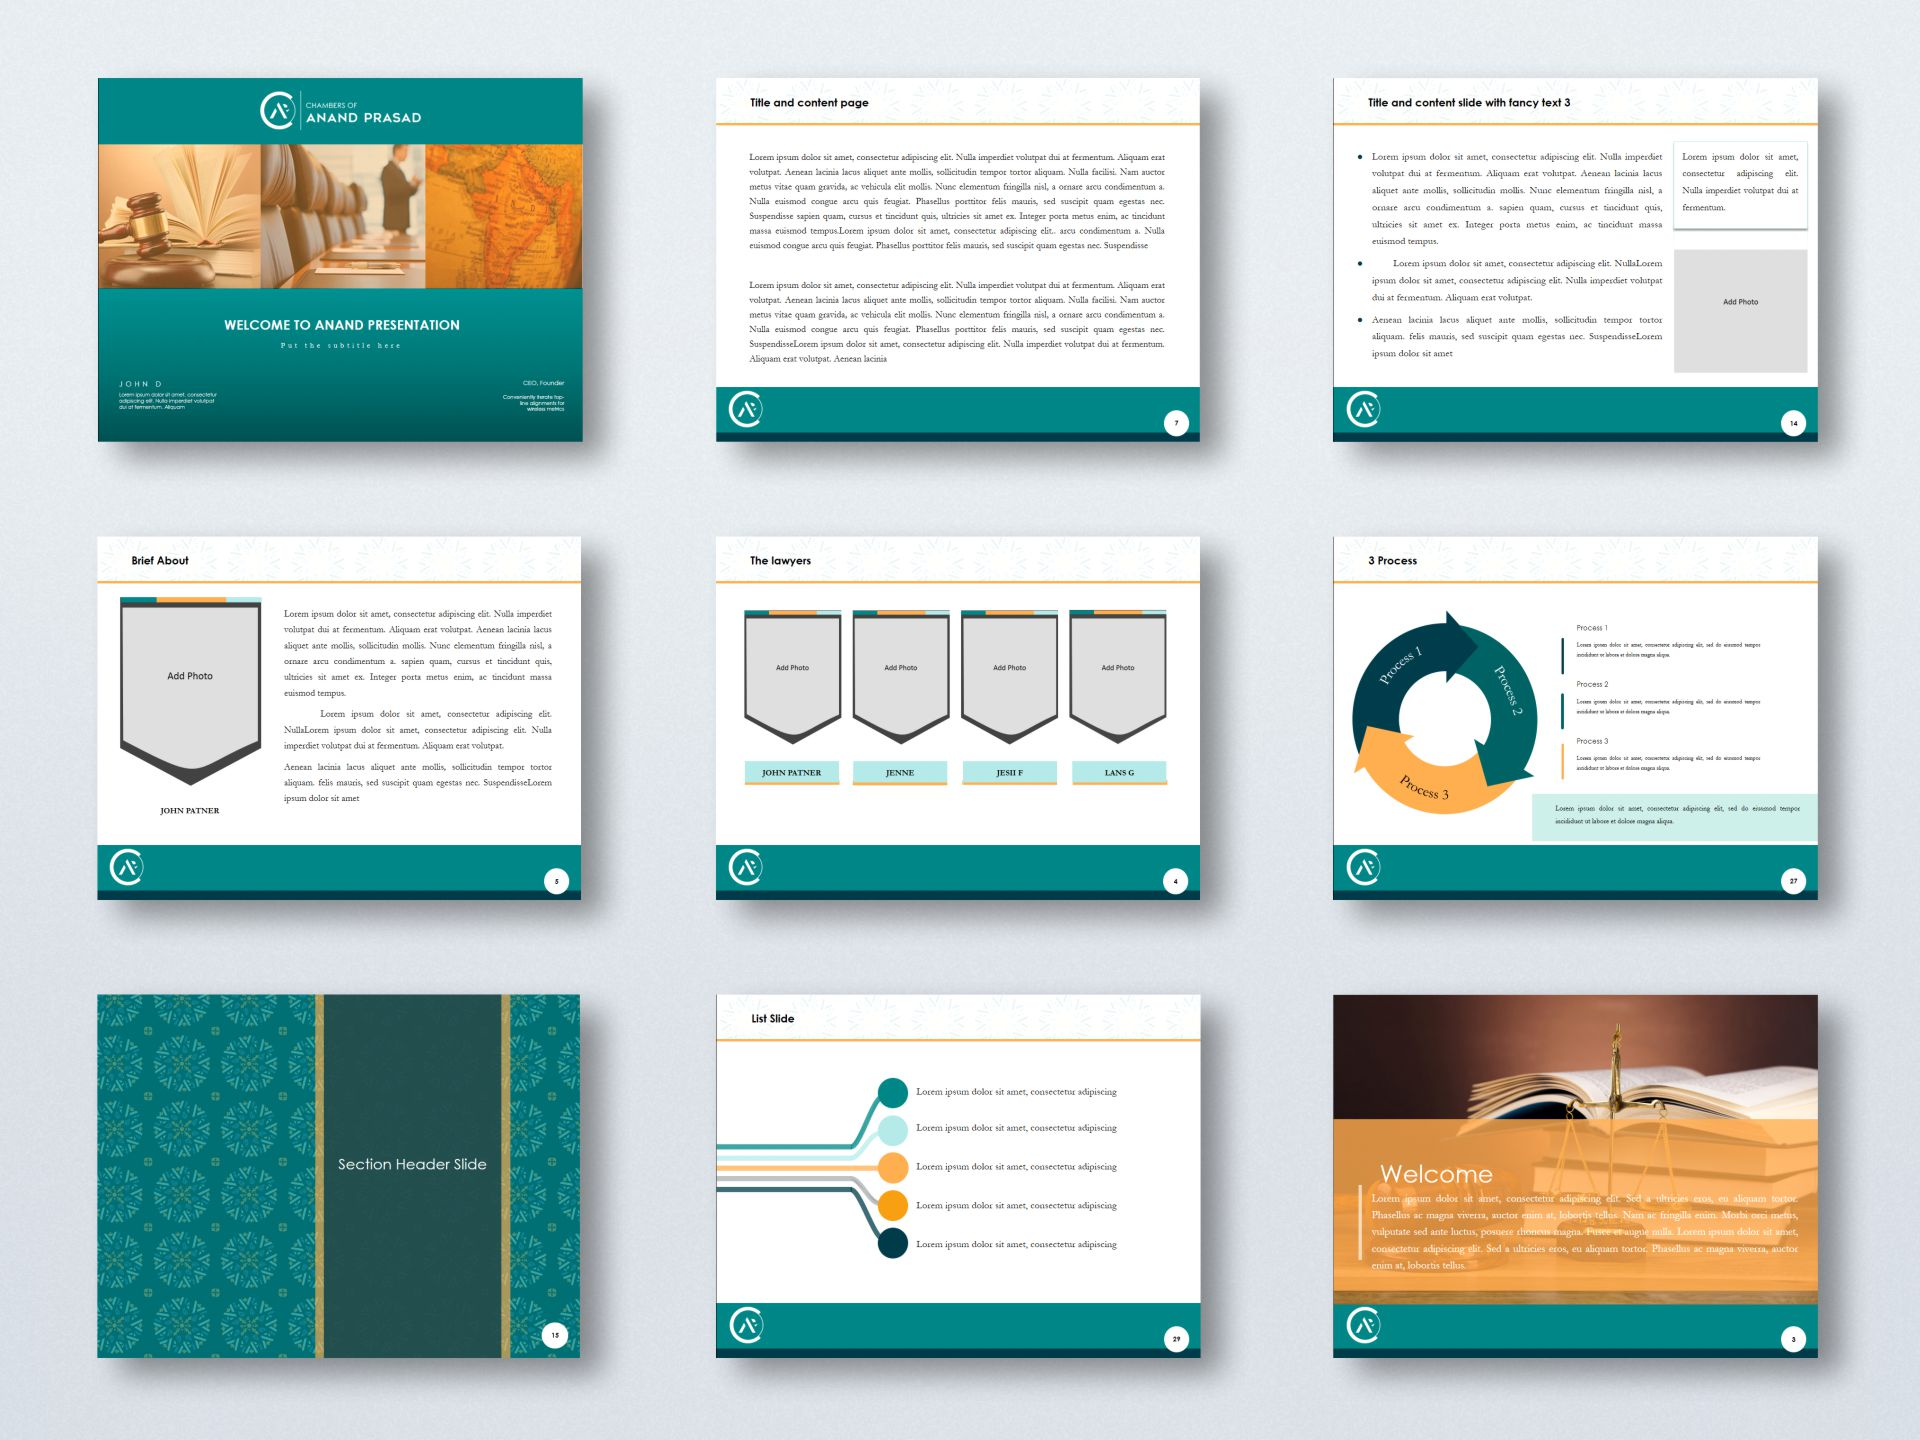 Chambers of Anand Prasad - Presentation Template